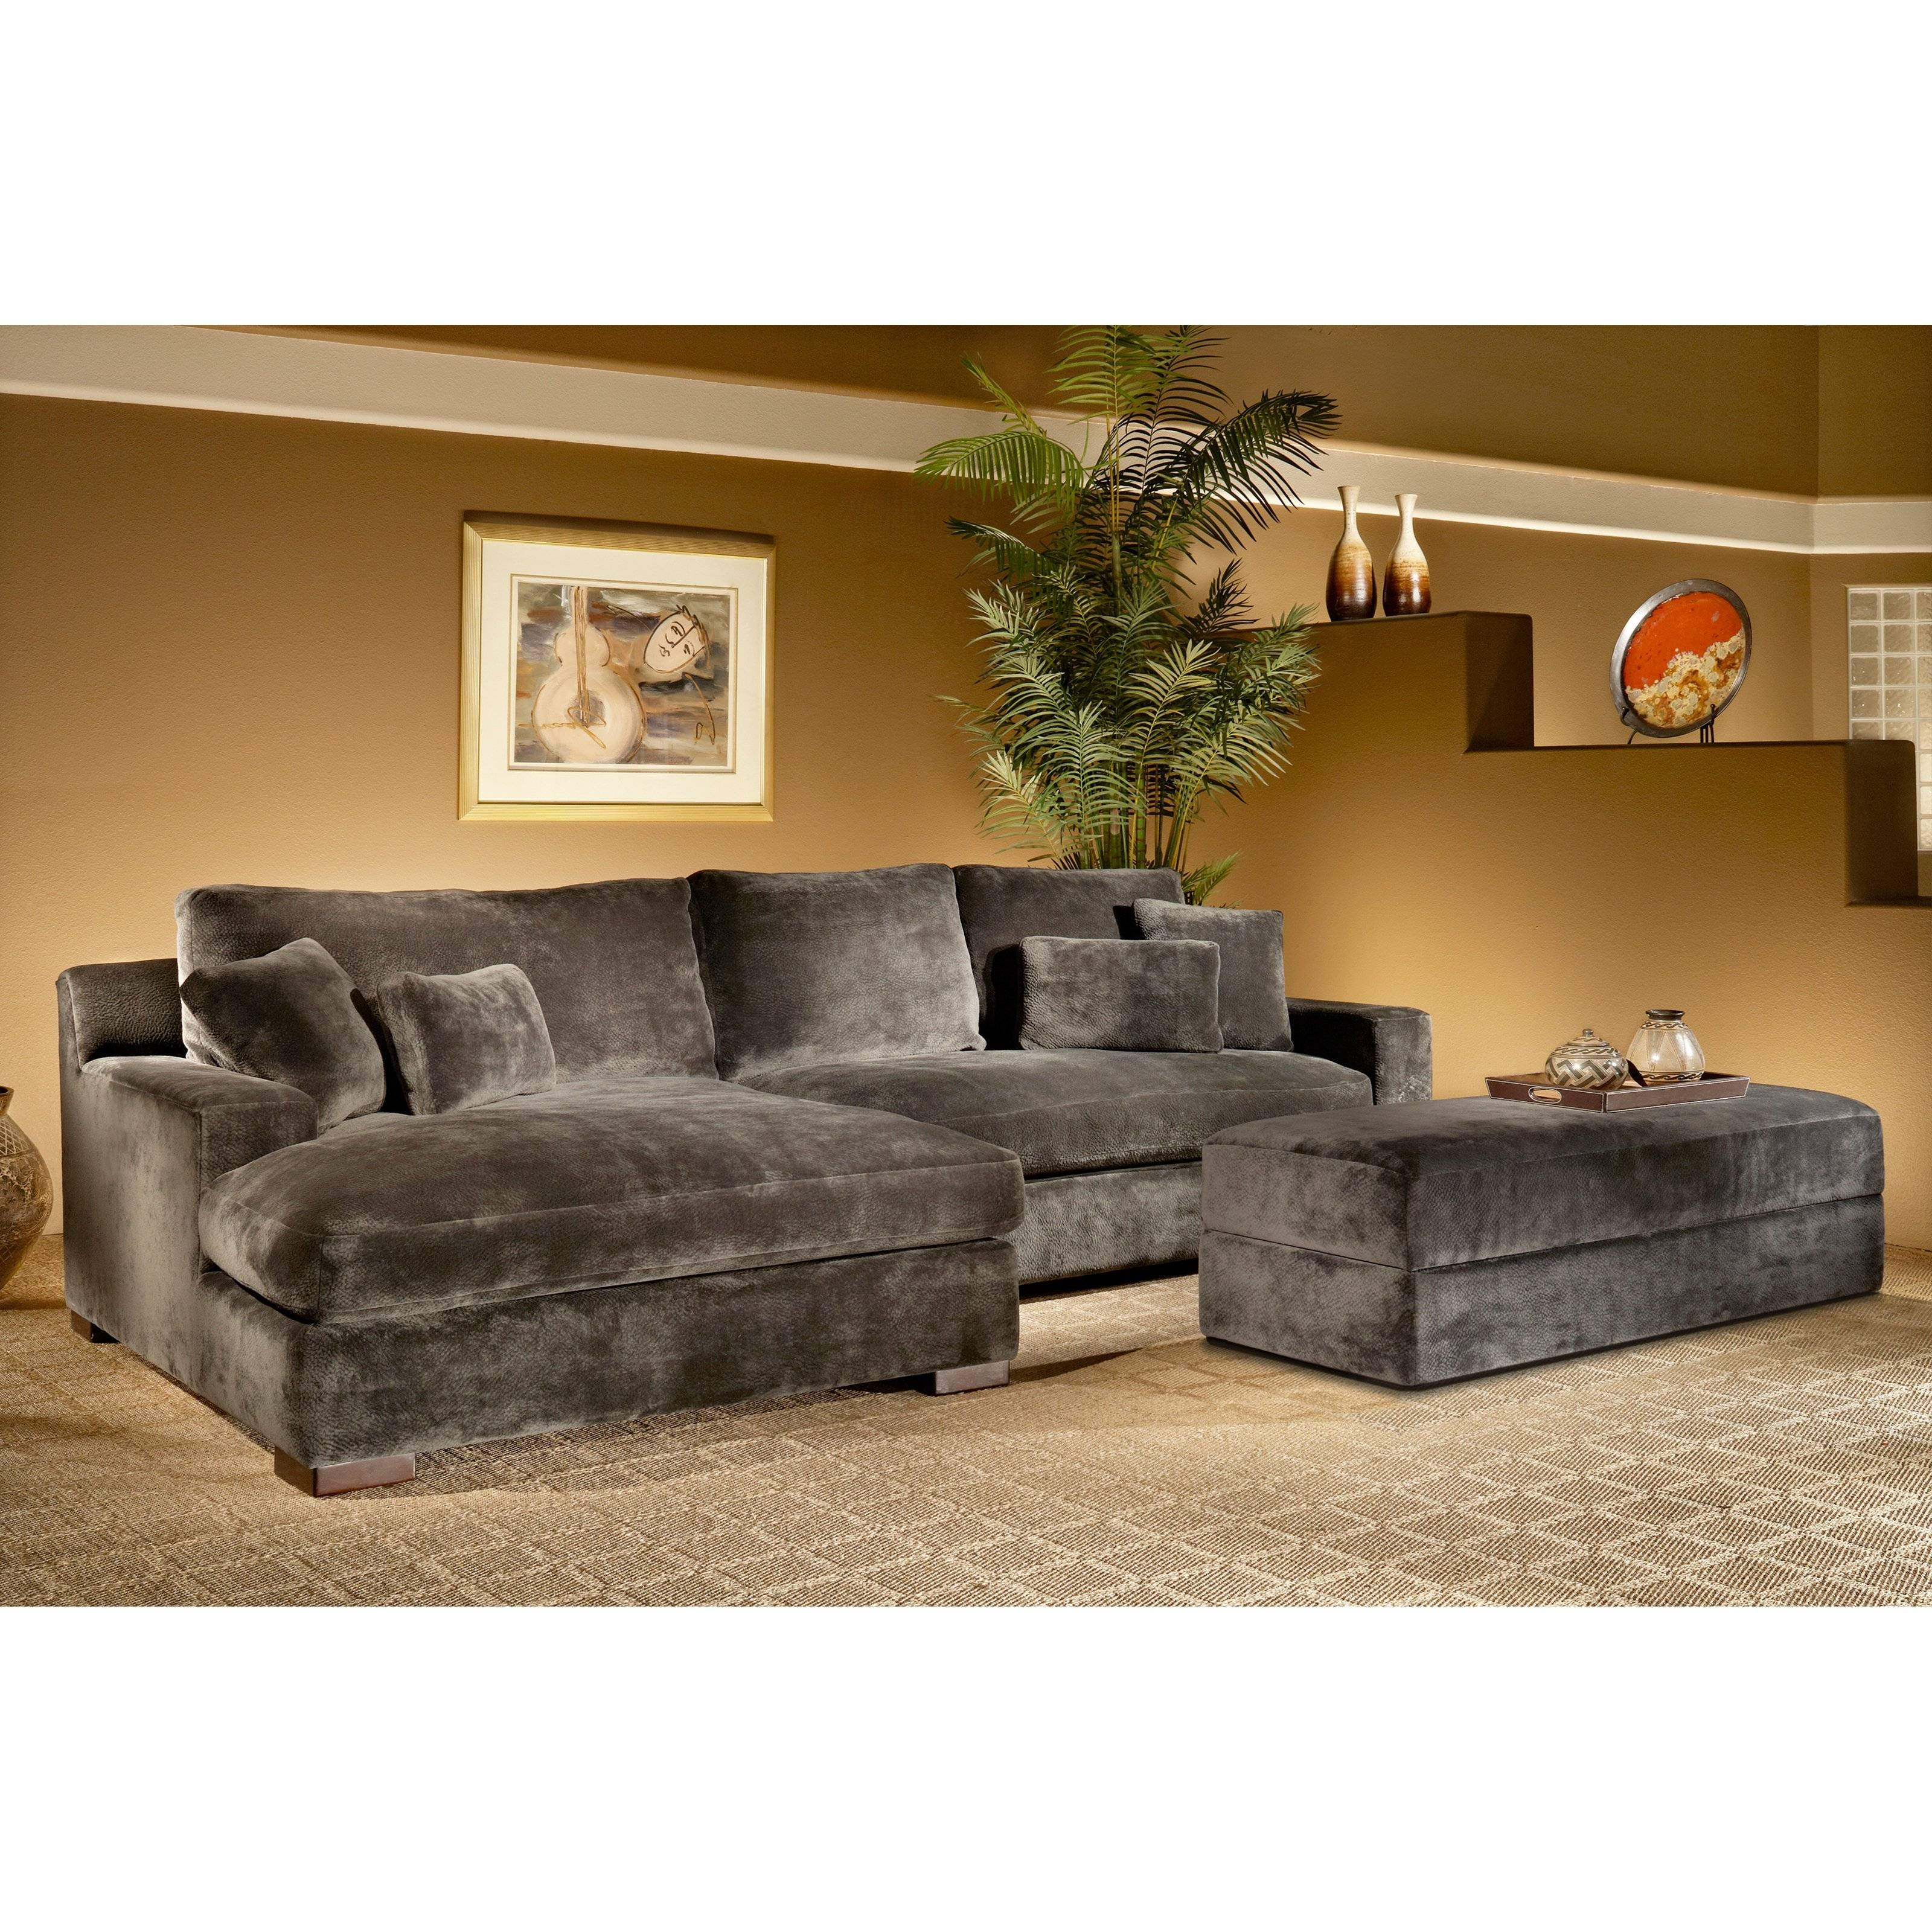 Furniture: High Quality Couch Sectional Design For Contemporary in Cindy Crawford Microfiber Sofas (Image 12 of 15)